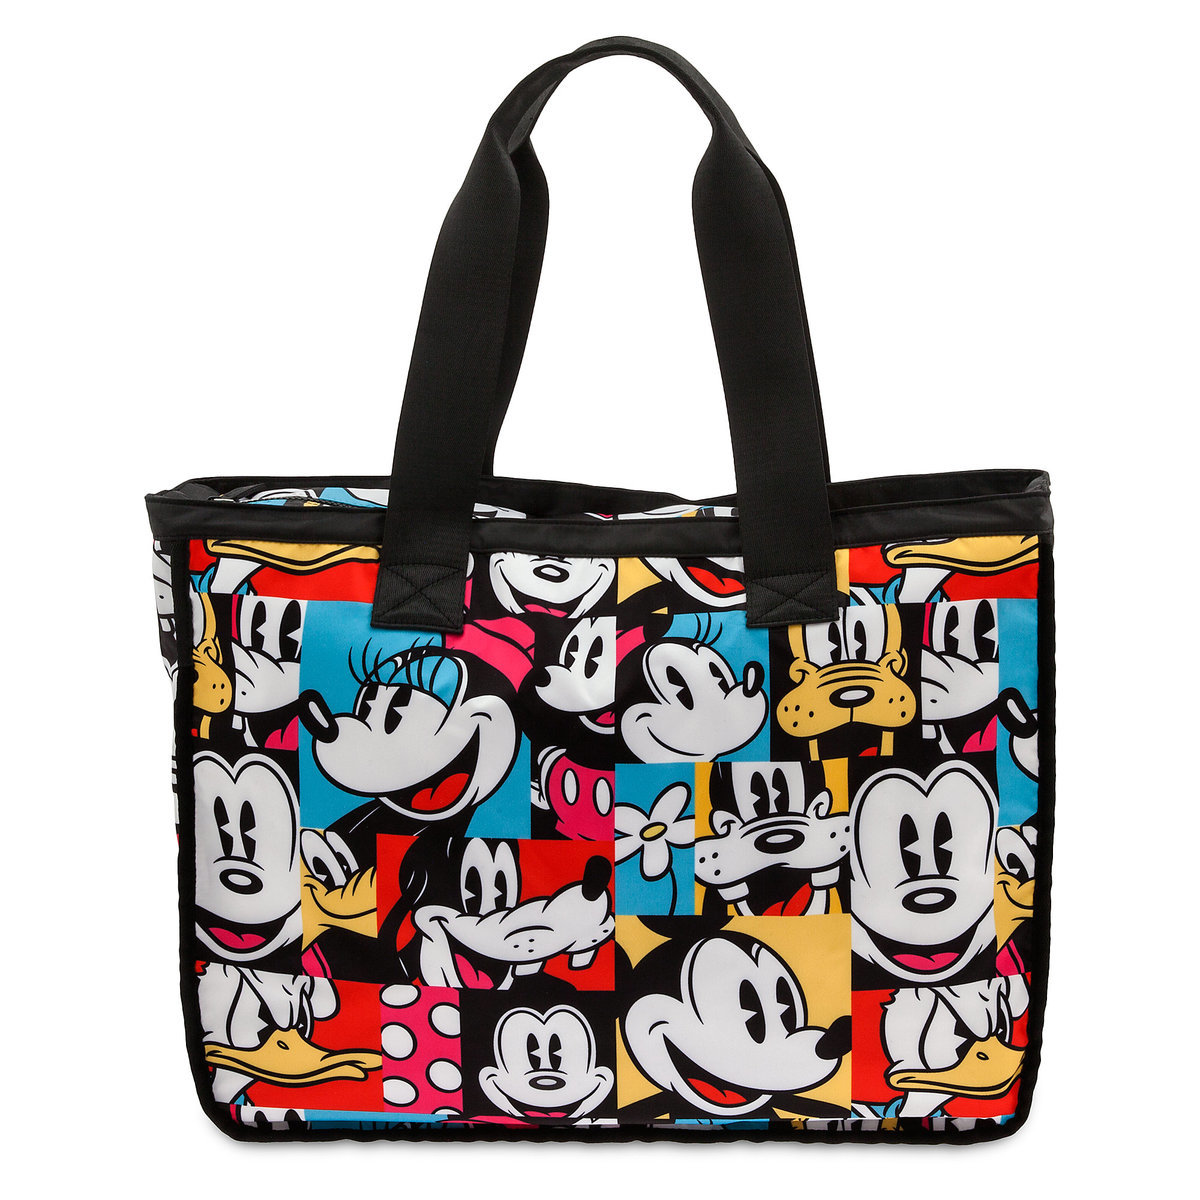 Product Image of Mickey Mouse and Friends Tote Bag # 1